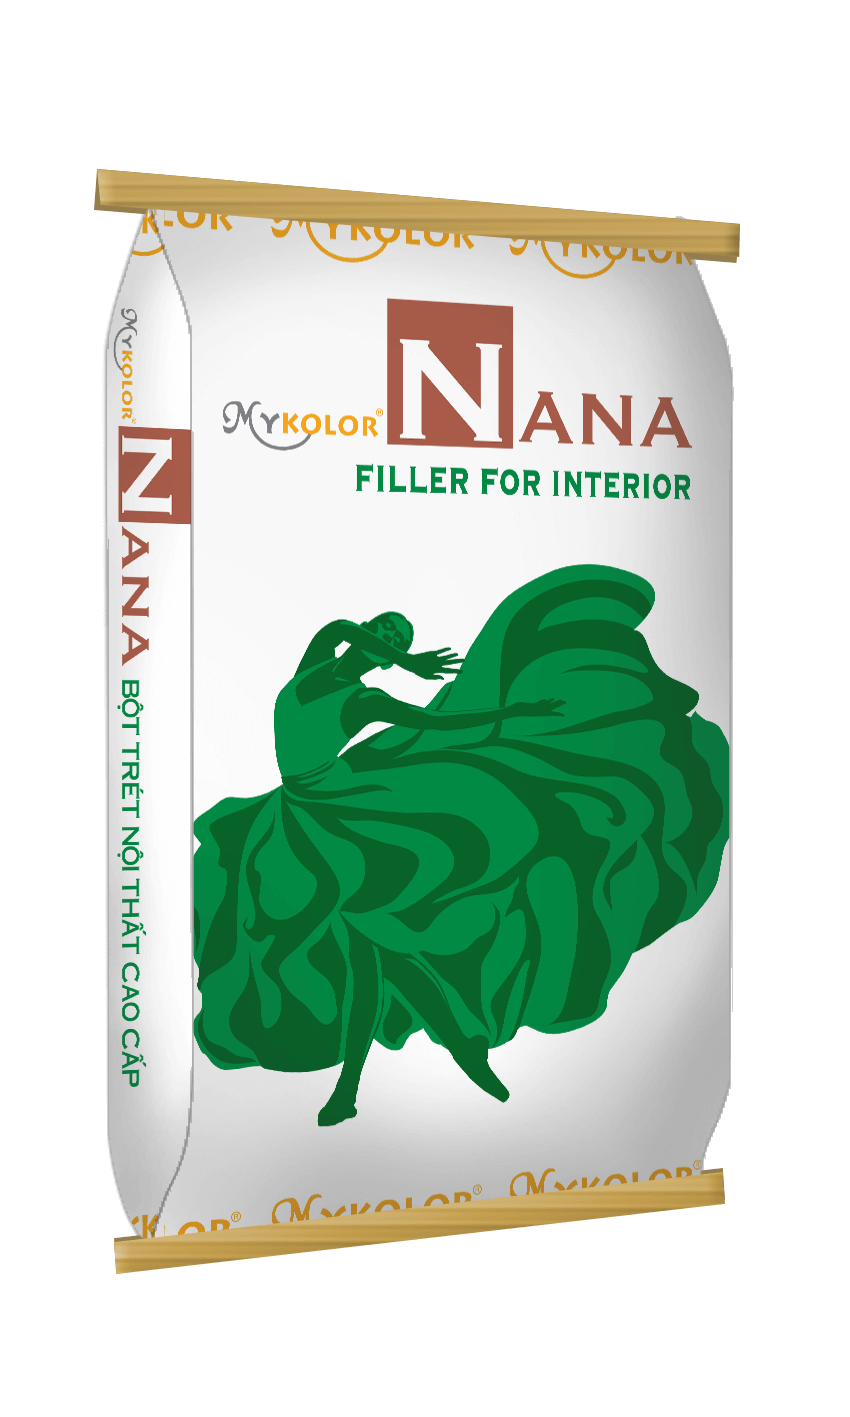 MYKOLOR NANA | FILLER | FOR INTERIOR